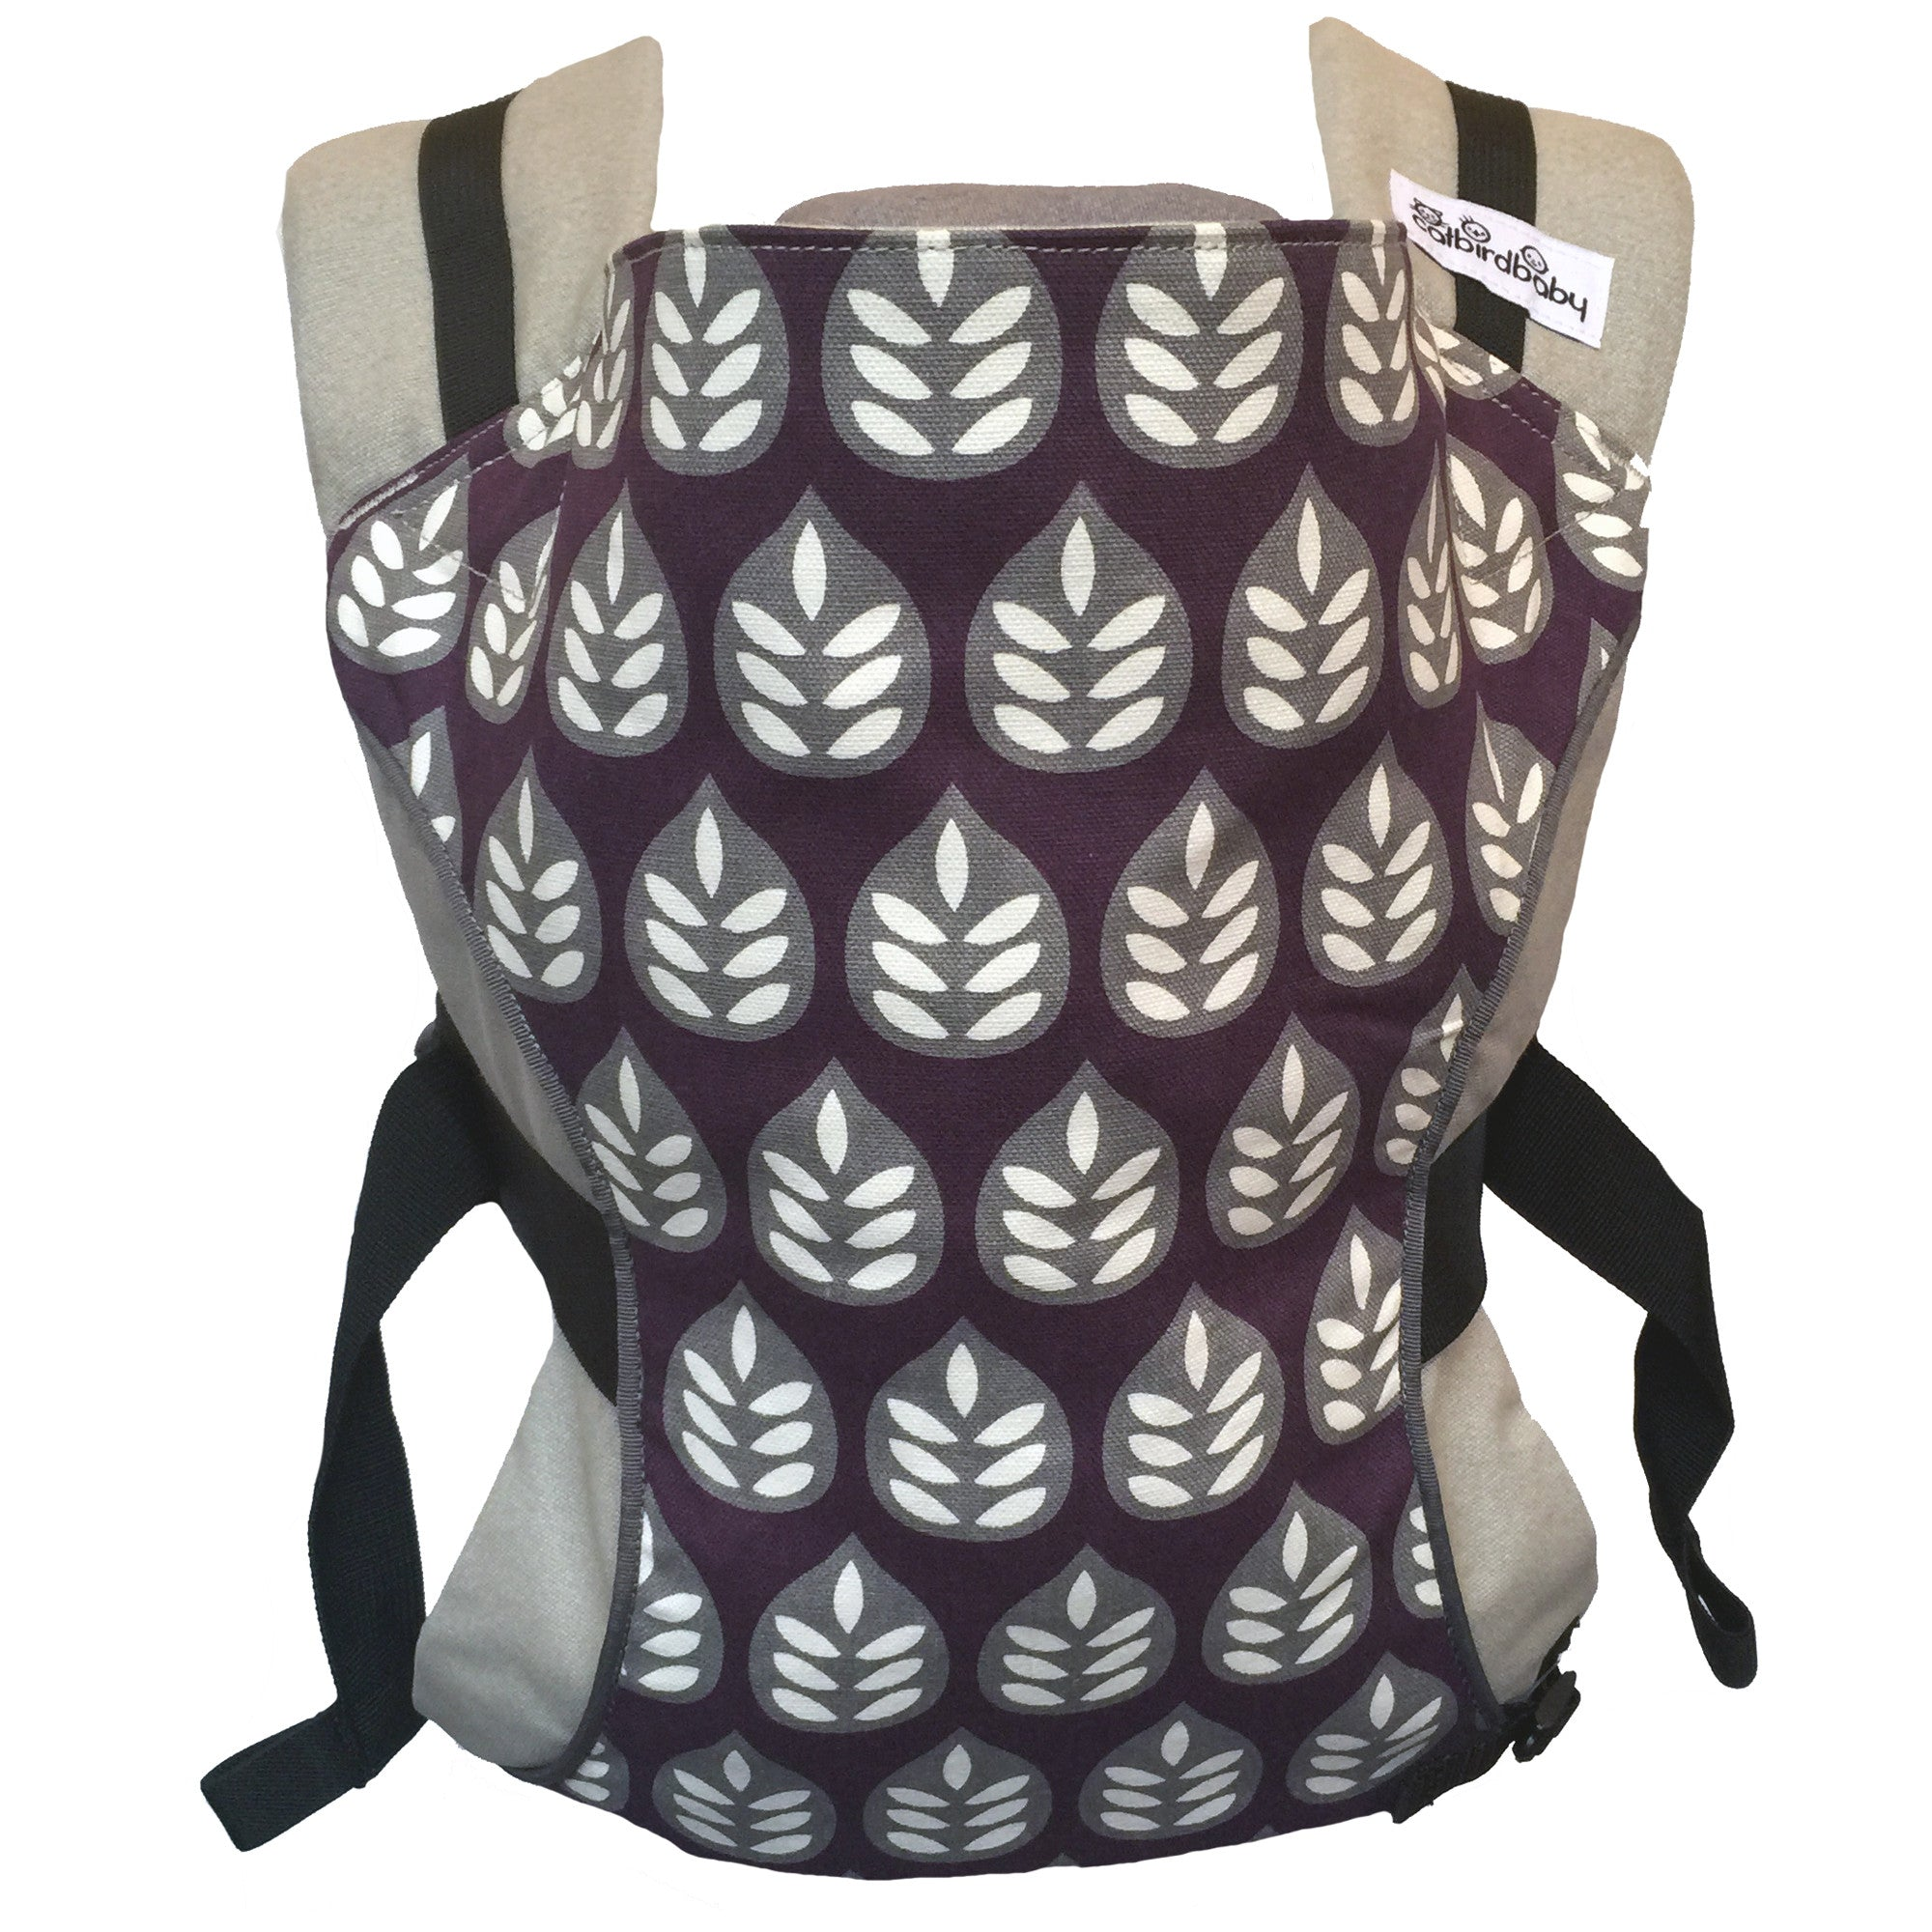 98bd1fc904c pikkolo newborn-to-toddler carrier - Catbird Baby